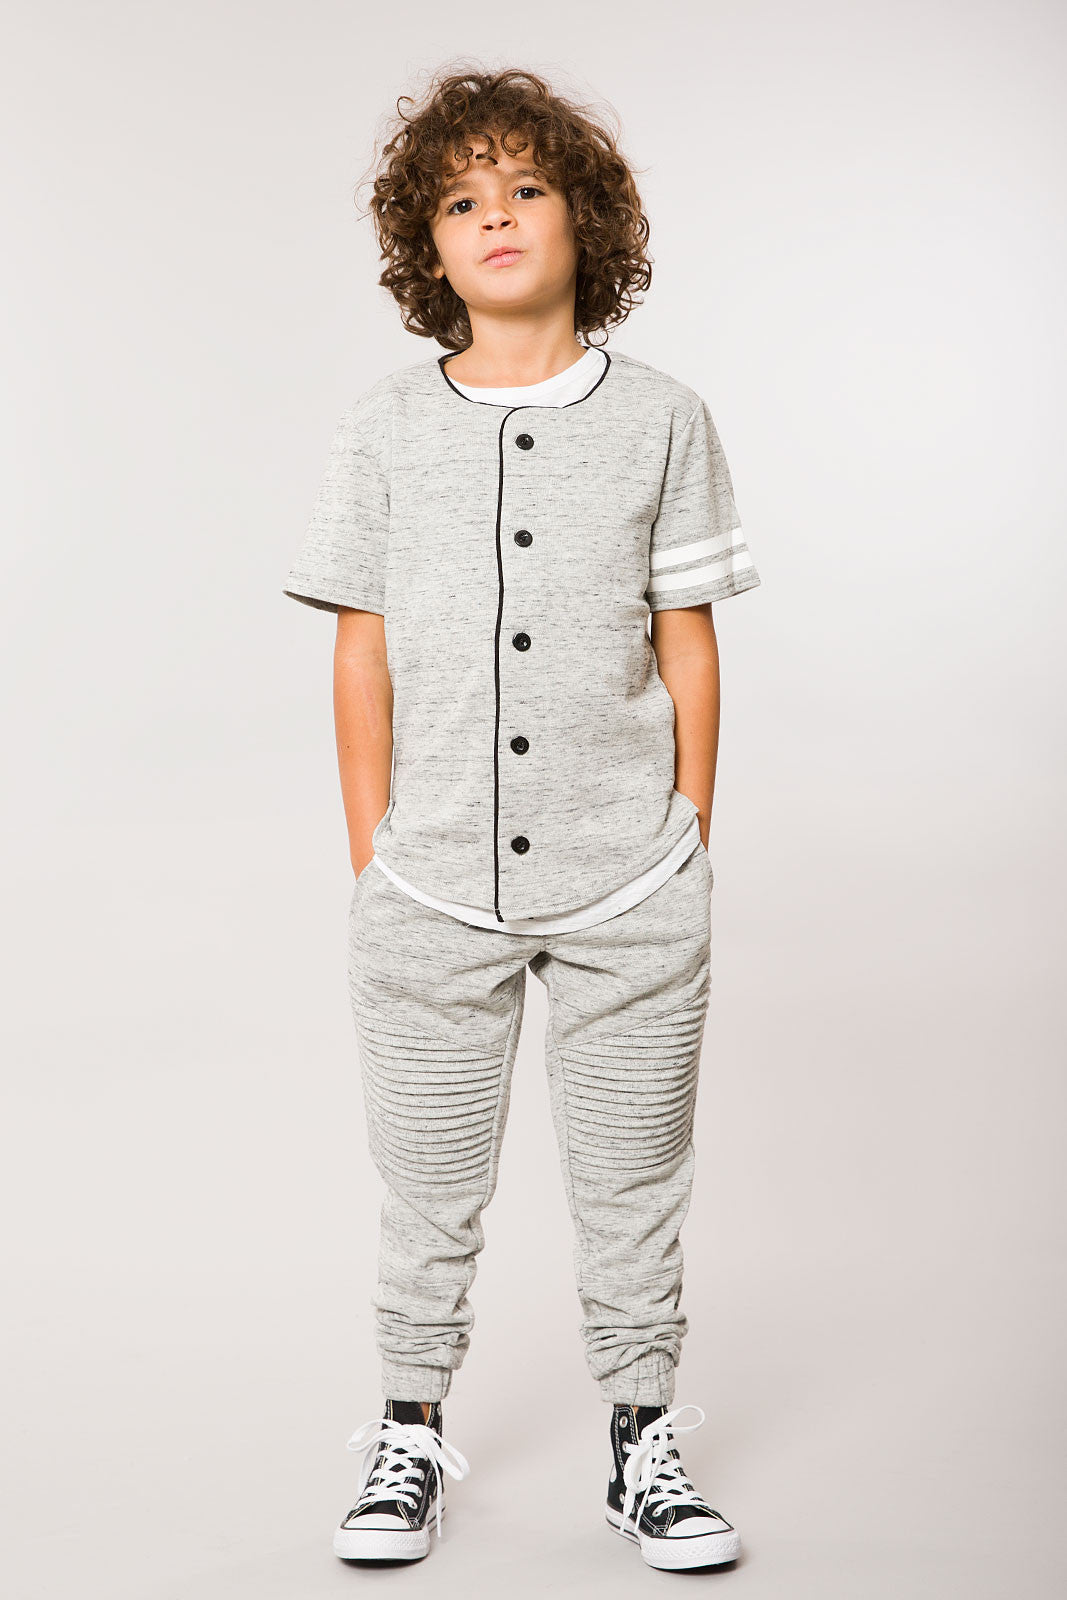 Heather Grey SS Baseball Jersey